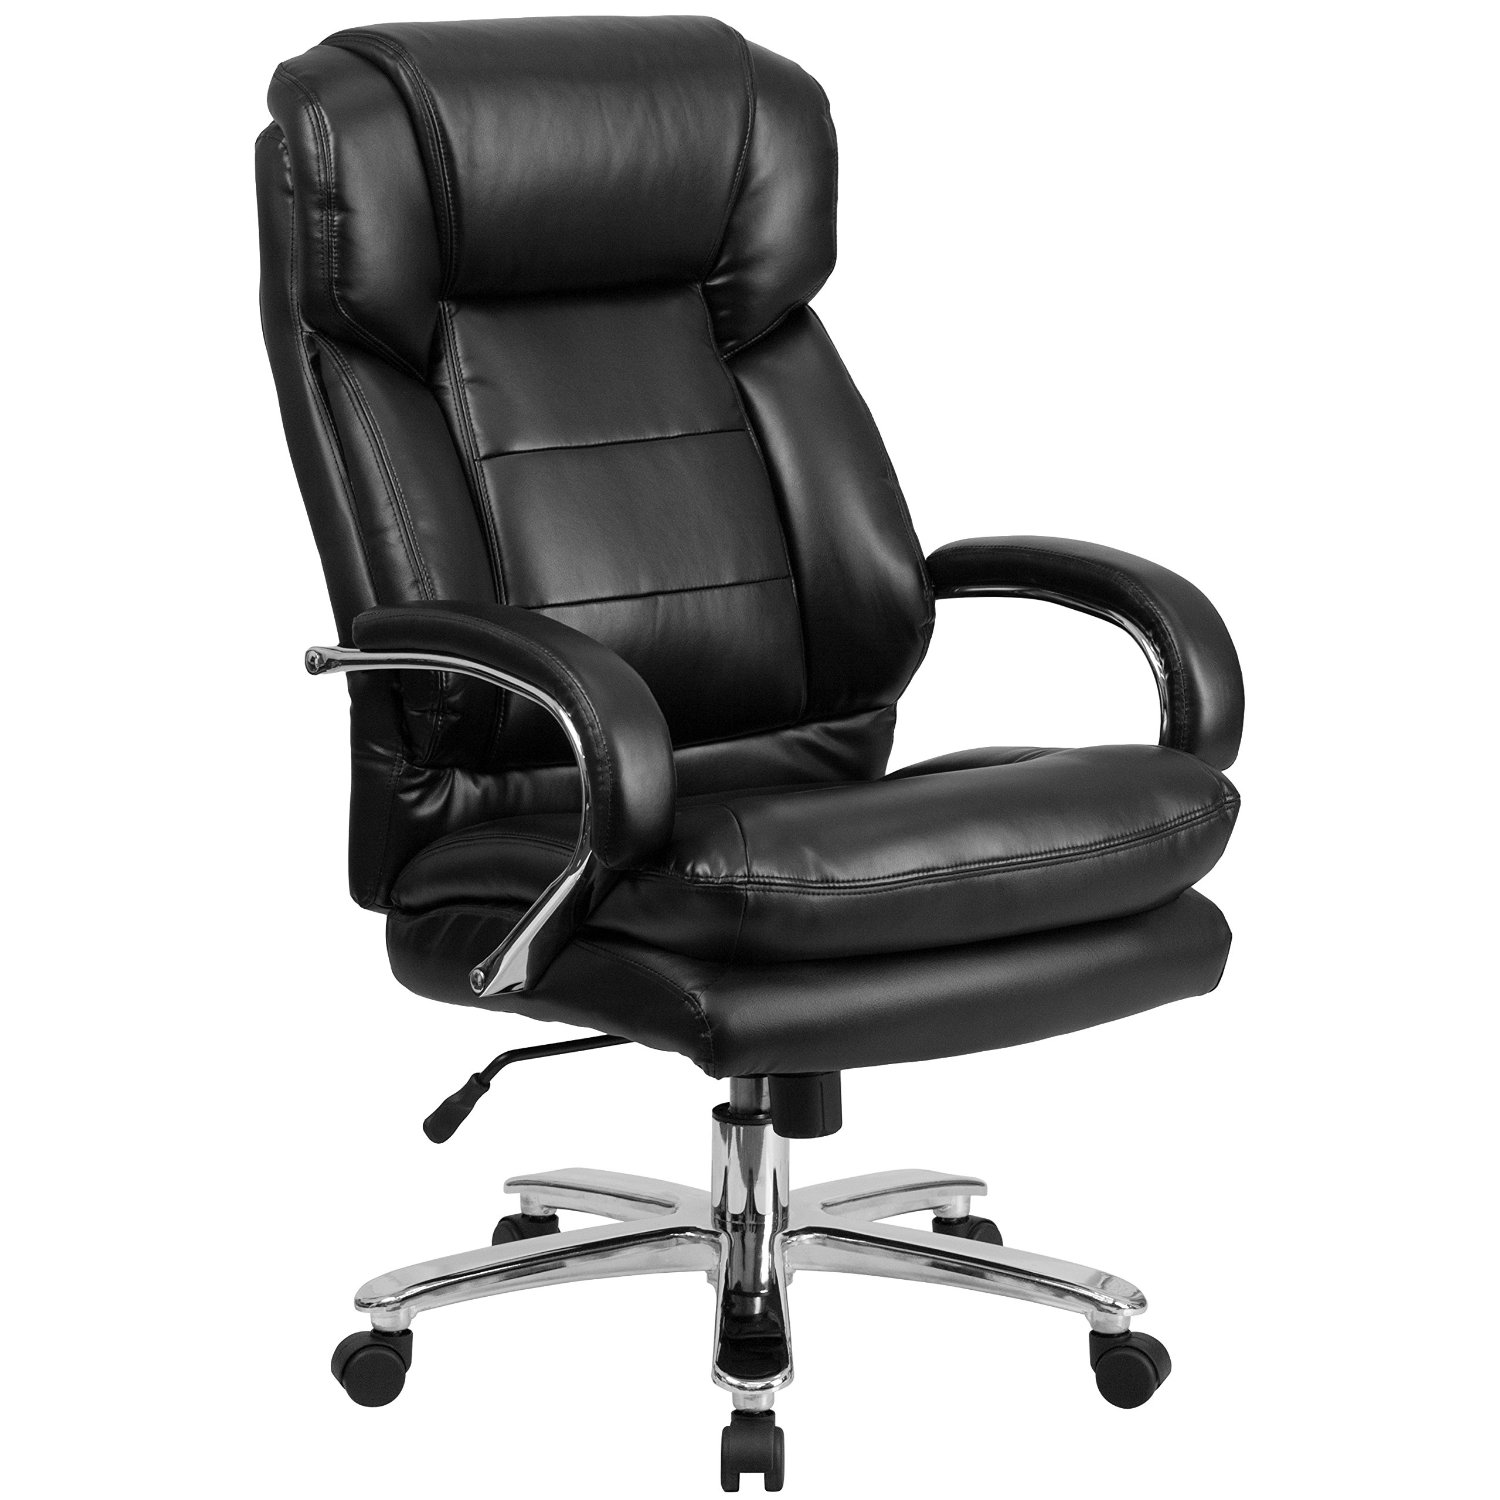 Office Chair For Tall Person 10 Big And Tall Office Chairs For Extra Large Comfort